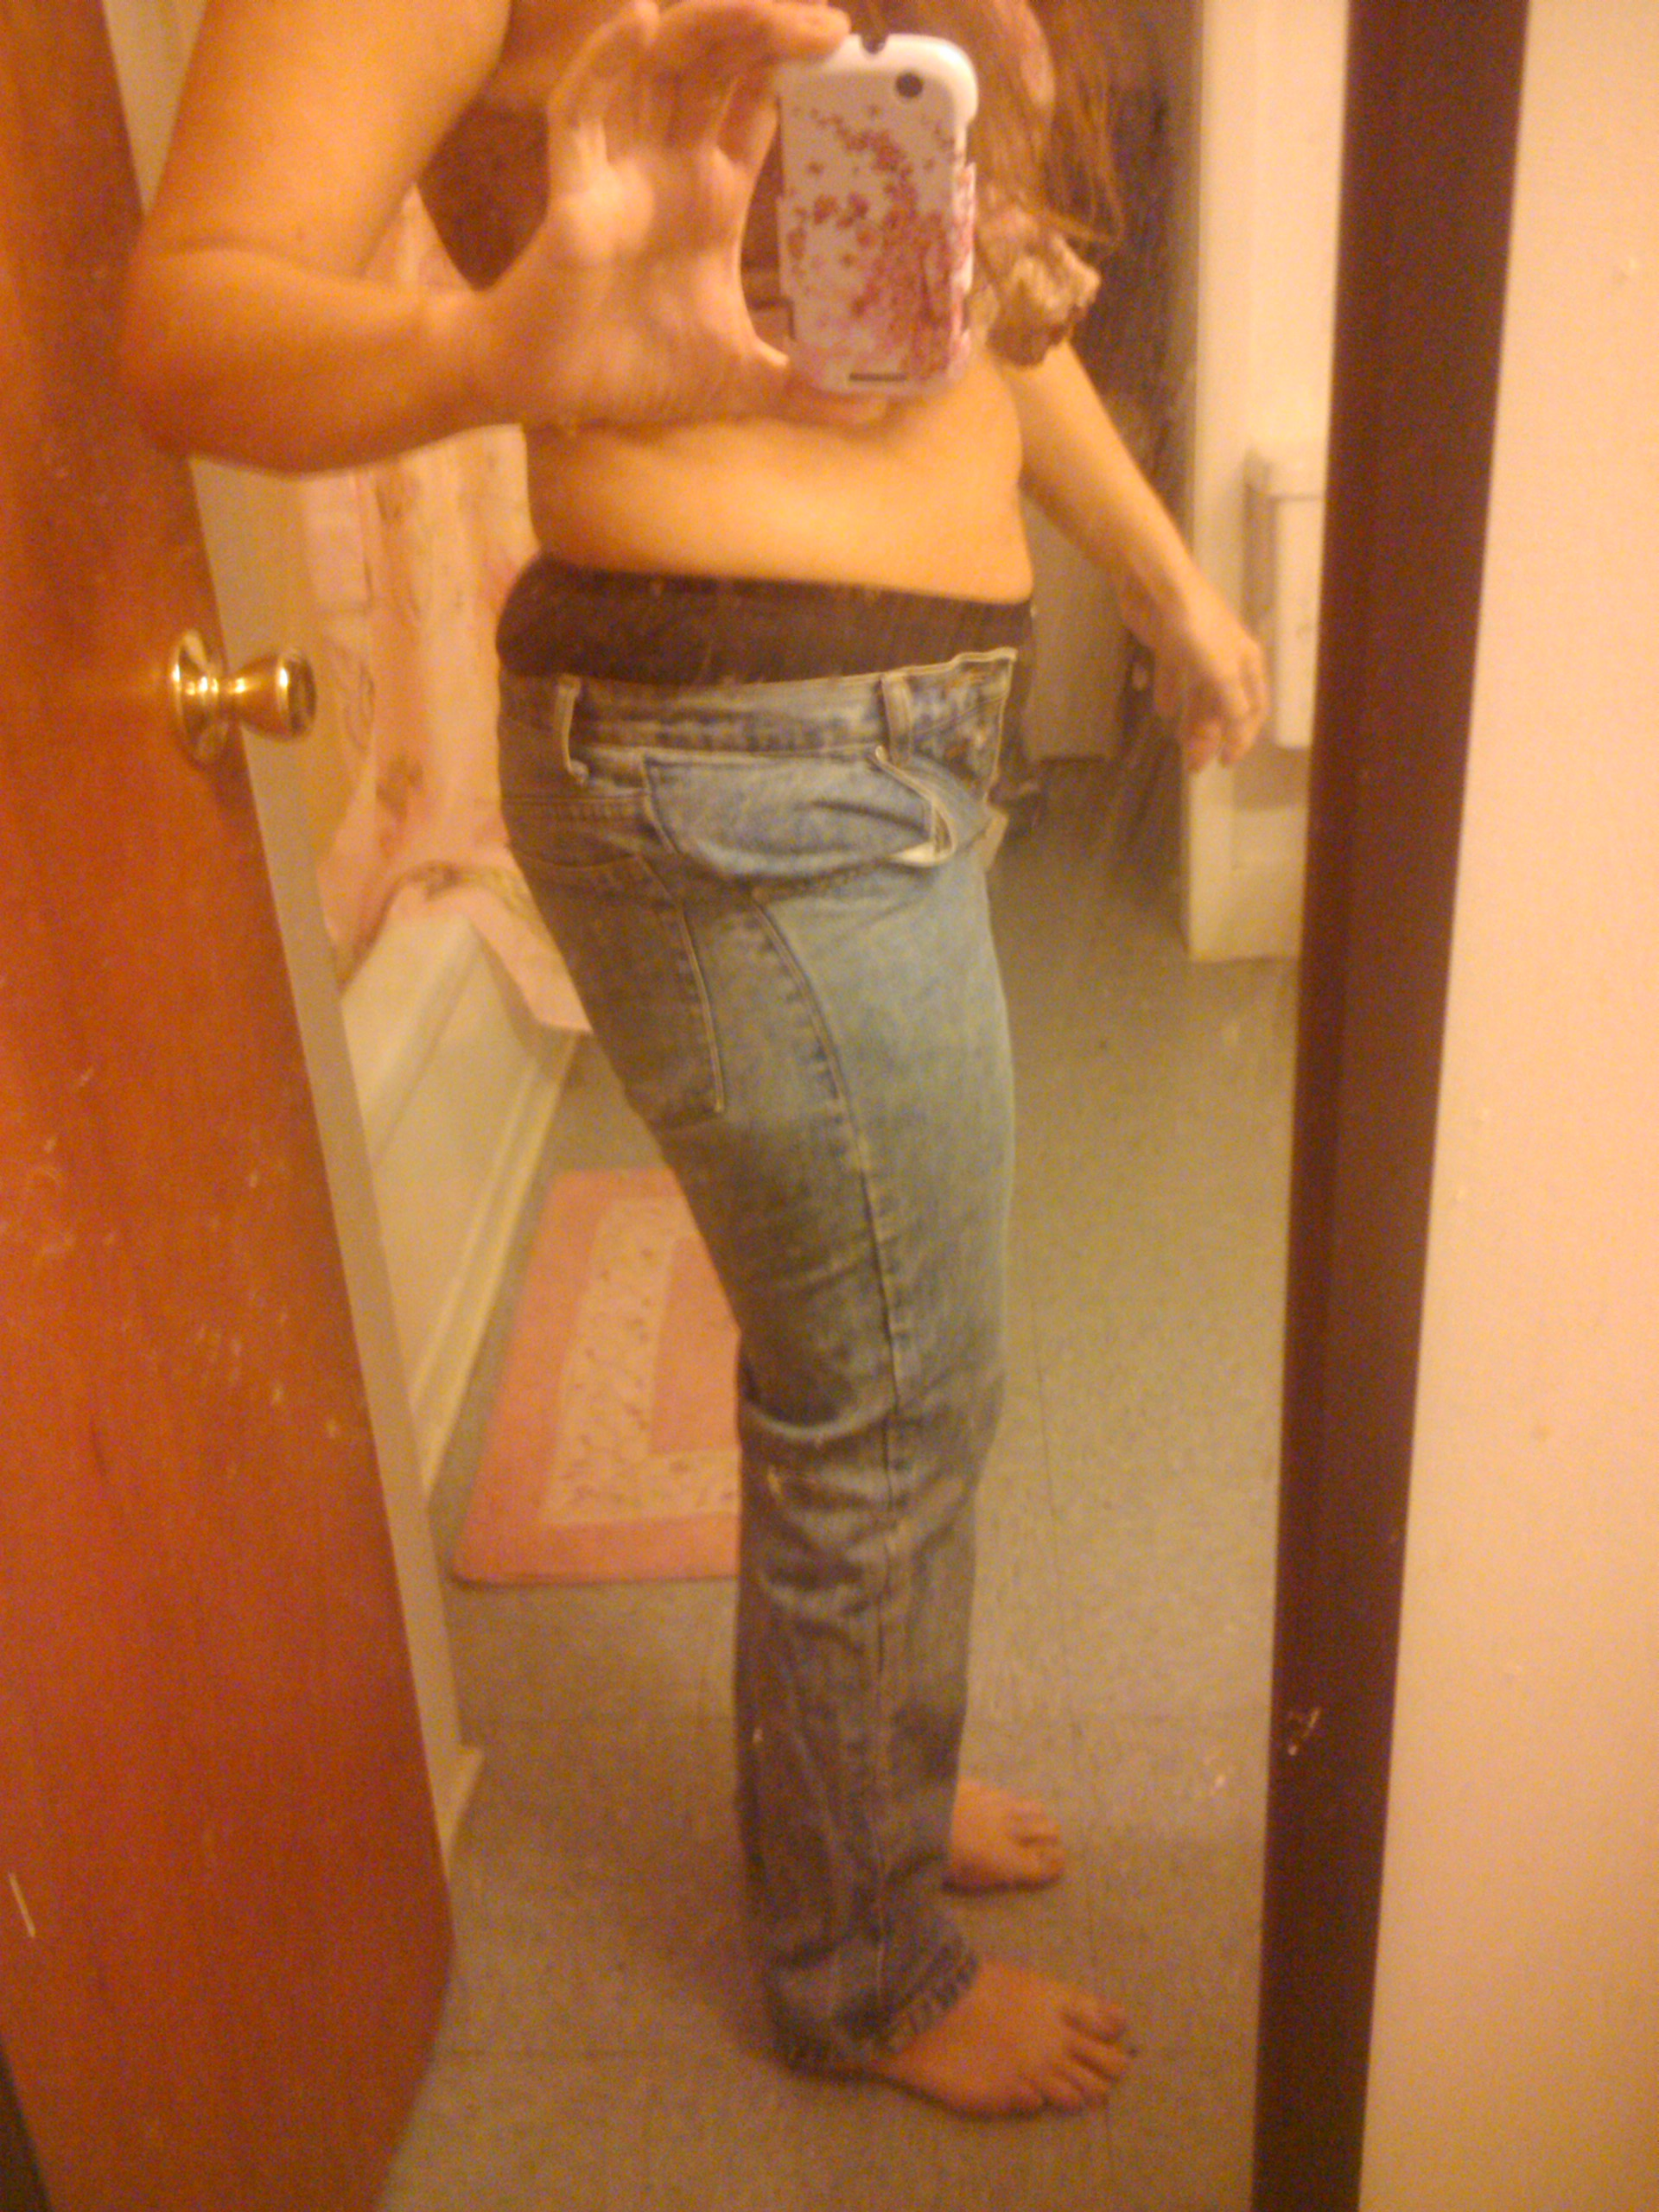 Blimp to Bombshell: RawrGirl's Weight Loss Diary-2012-09-06-20.56.30_newark_delaware_us.jpg